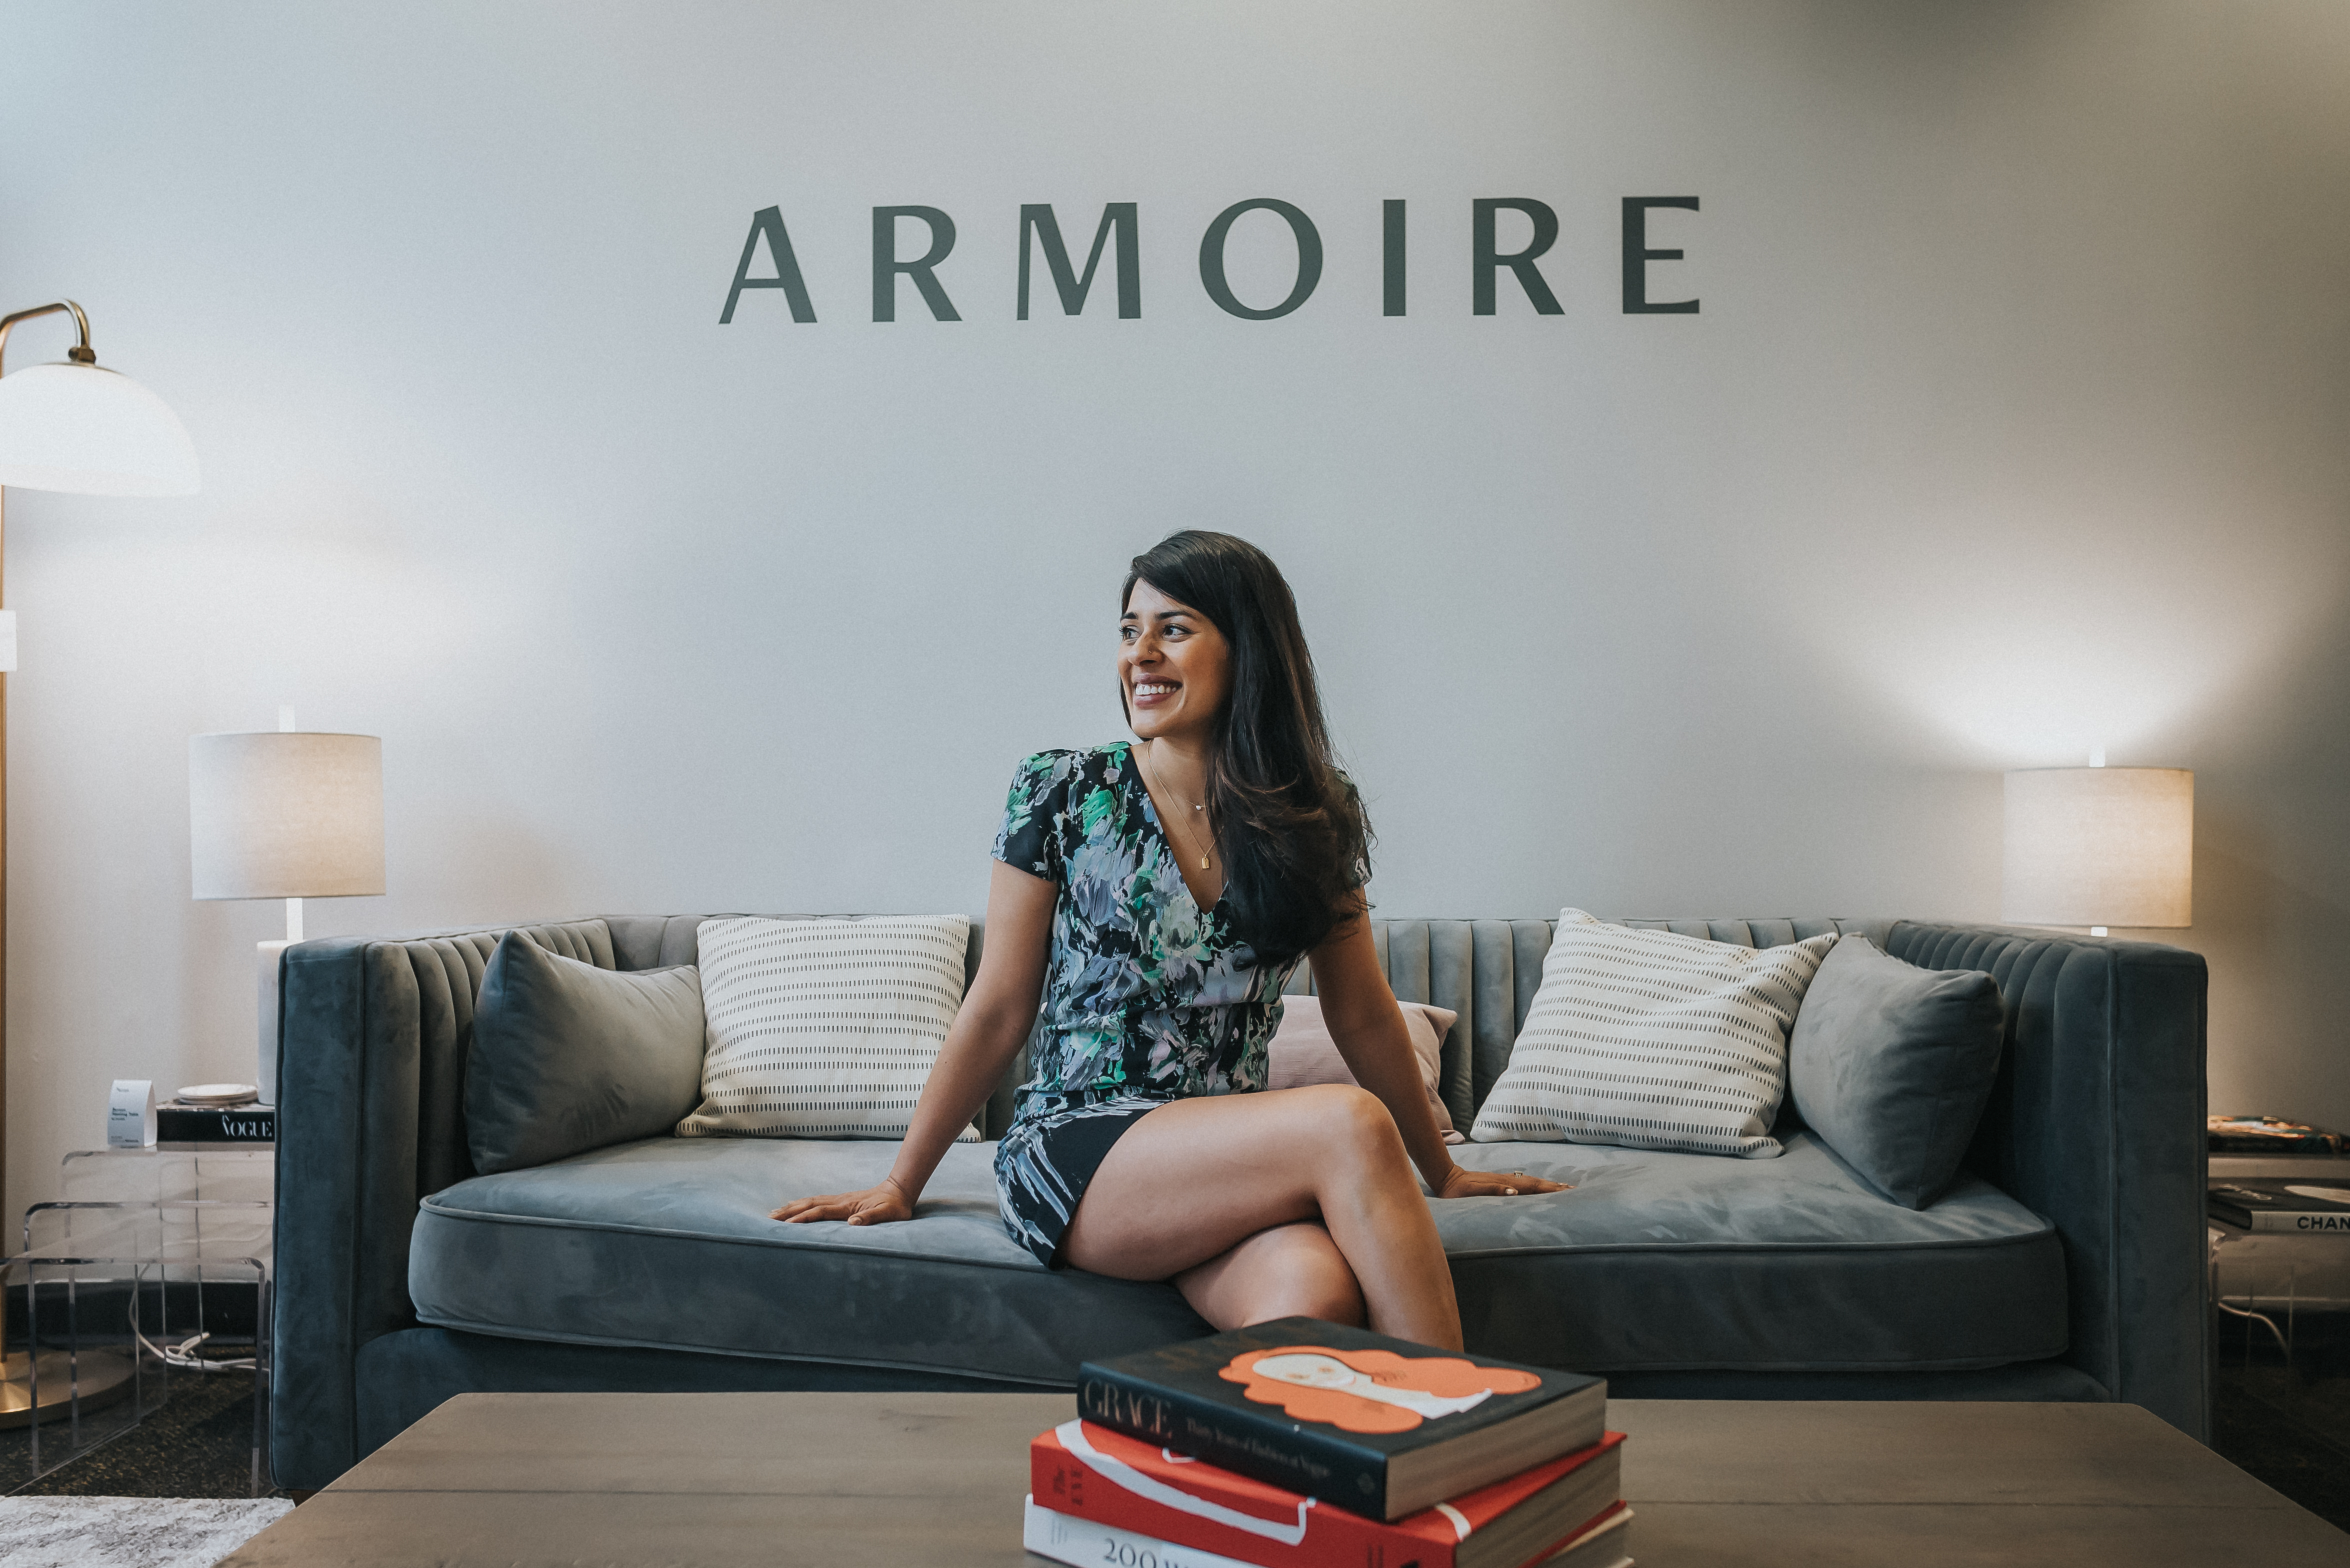 6373ea96bbb Women's clothing rental service Armoire raises more cash, moves into new HQ  with retail space